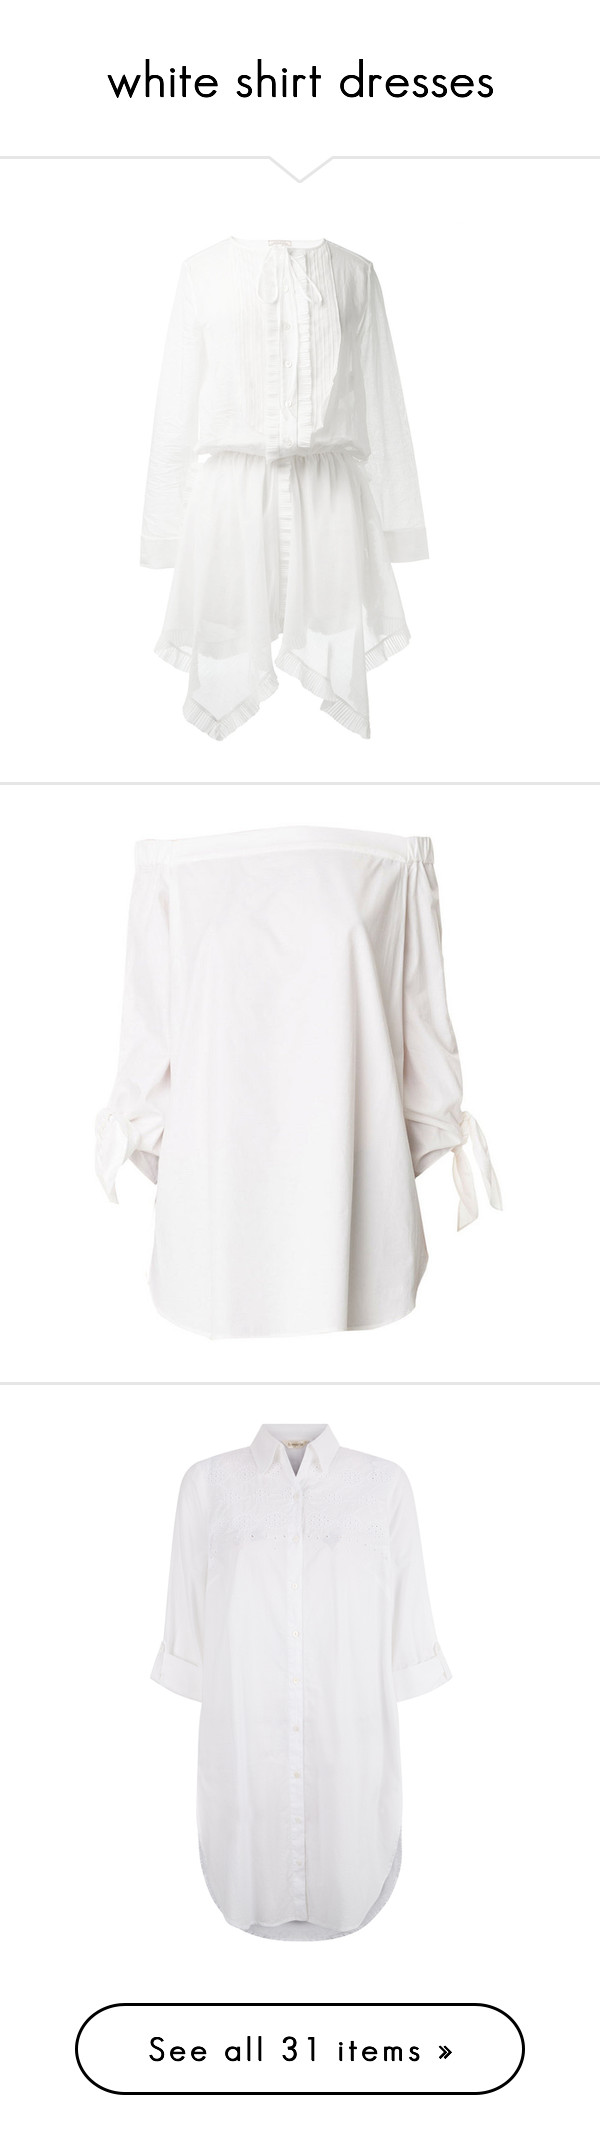 """""""white shirt dresses"""" by millilolly ❤ liked on Polyvore featuring dresses, tops, white cotton dress, white dress, cotton dress, long sleeve collar dress, collared shirt dress, tunics, shirts and white"""